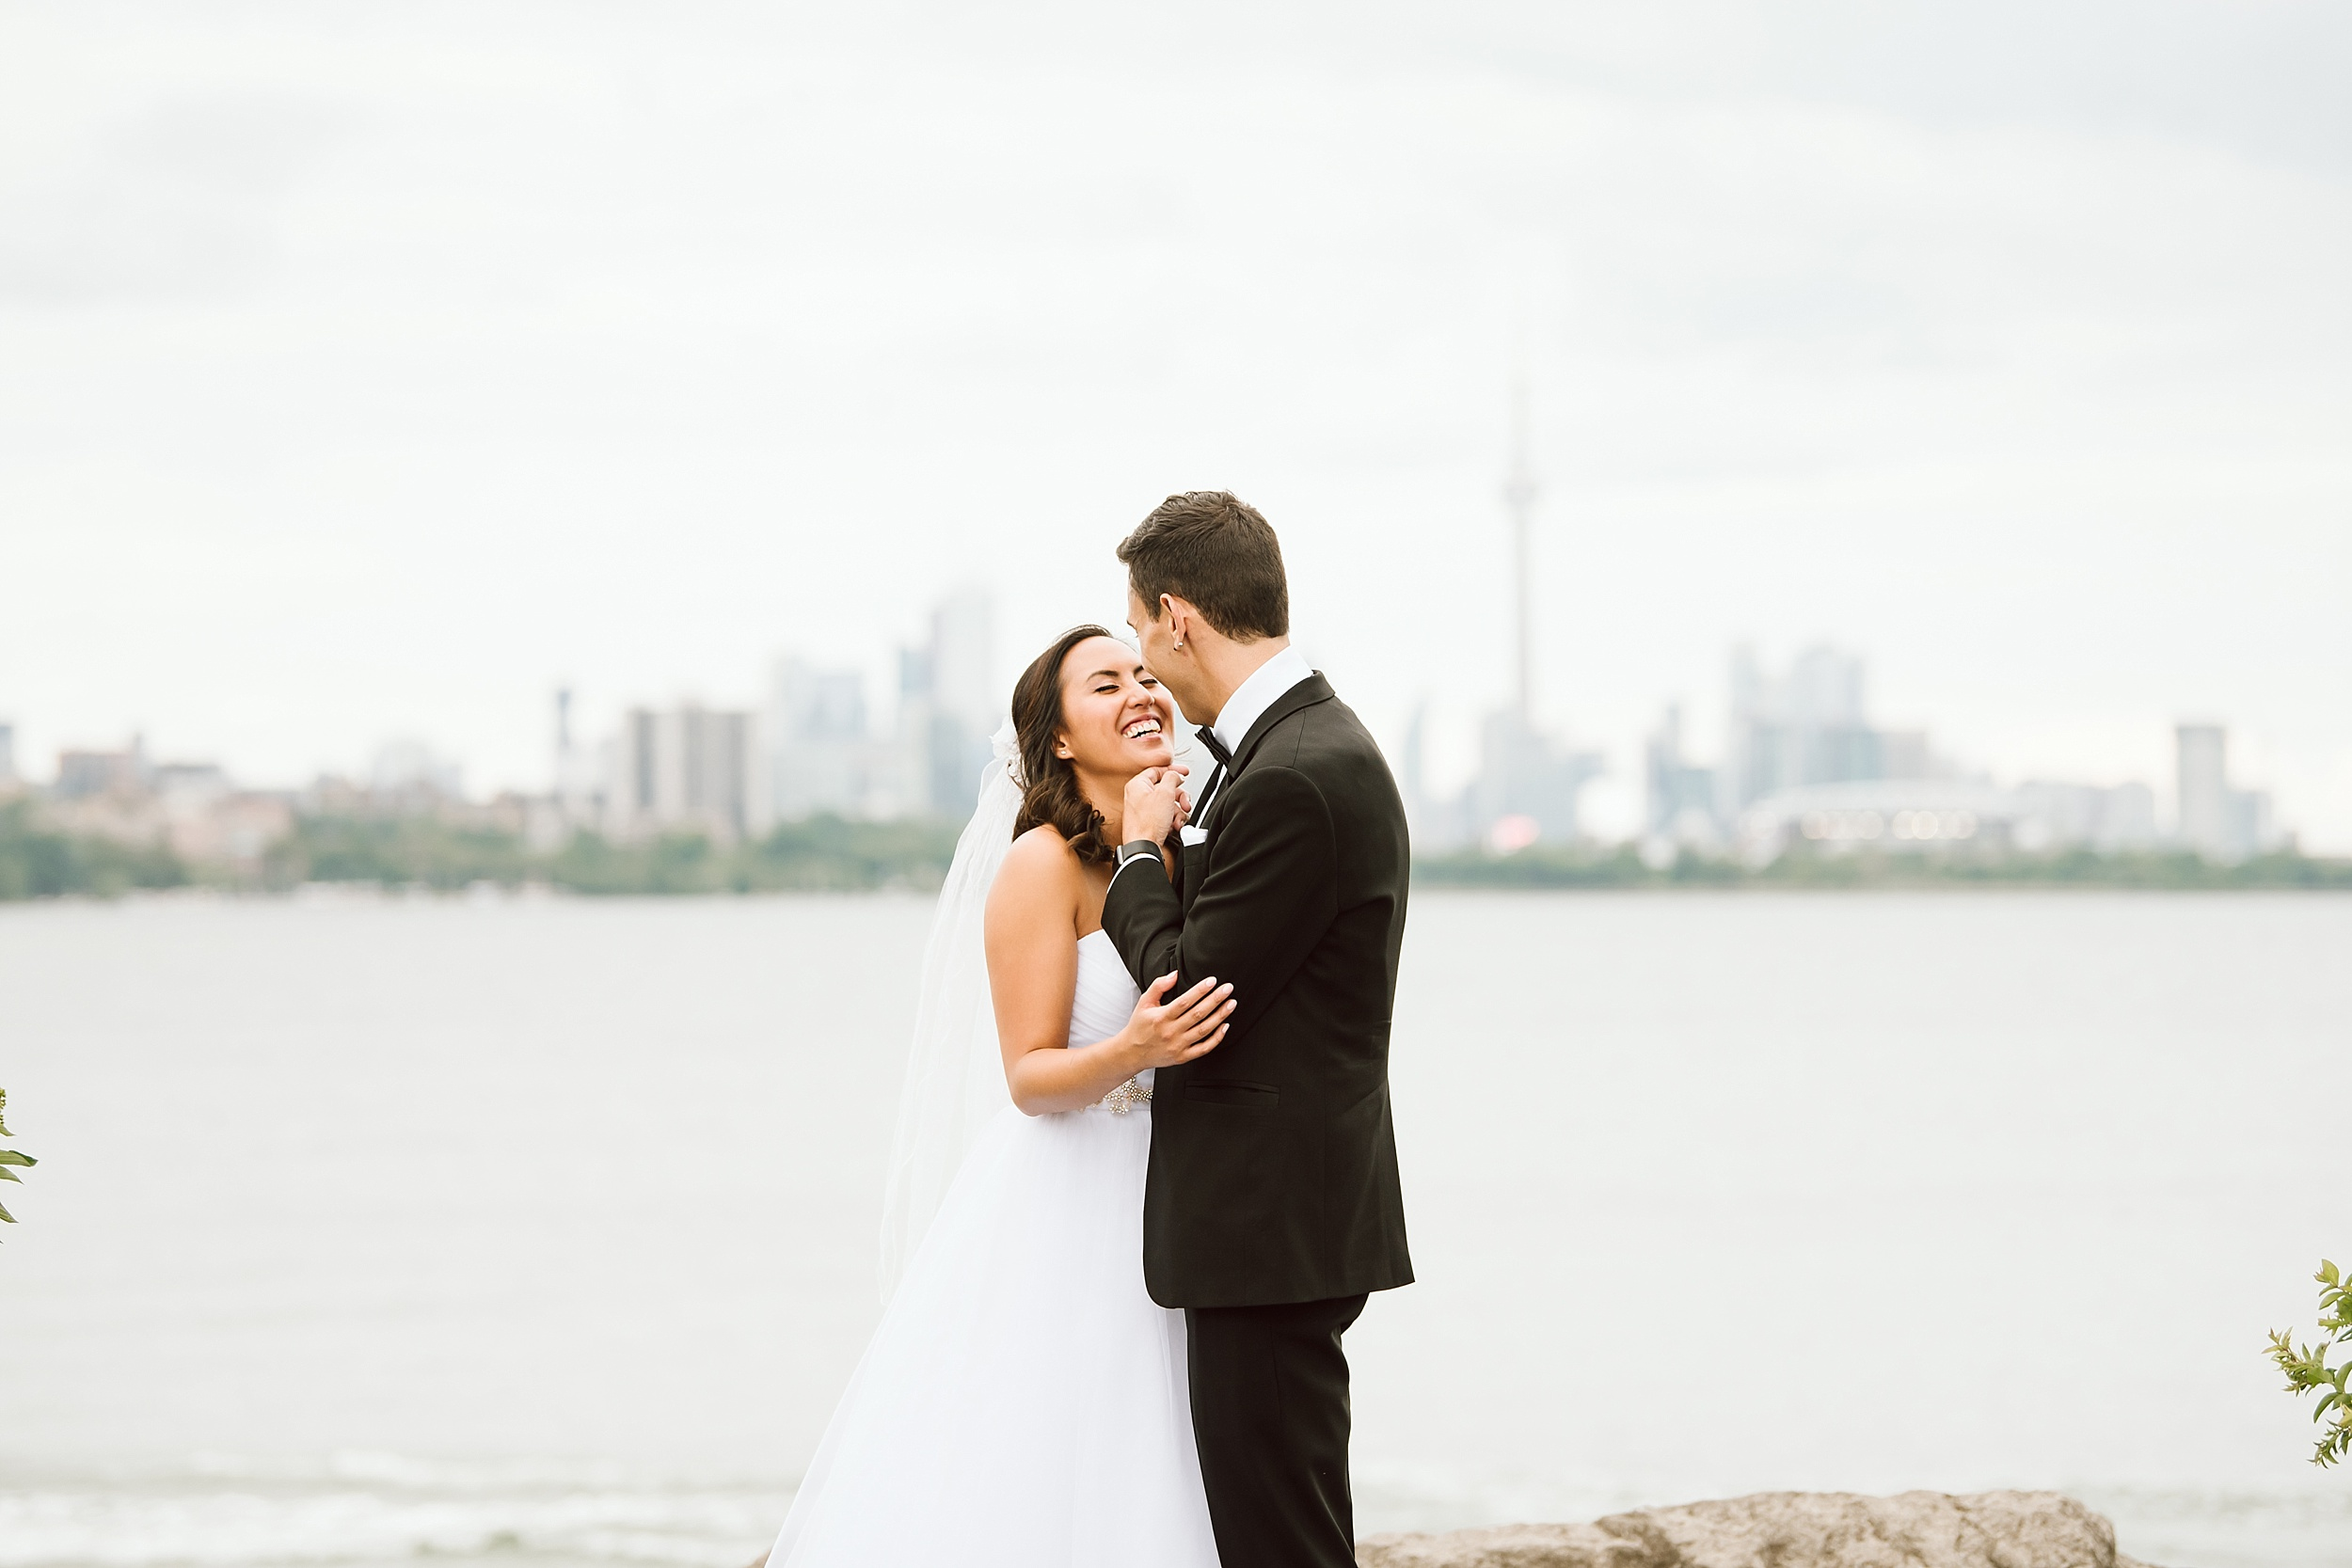 Toronto_Wedding_Photographer_Catholic_Portuguese_0060.jpg